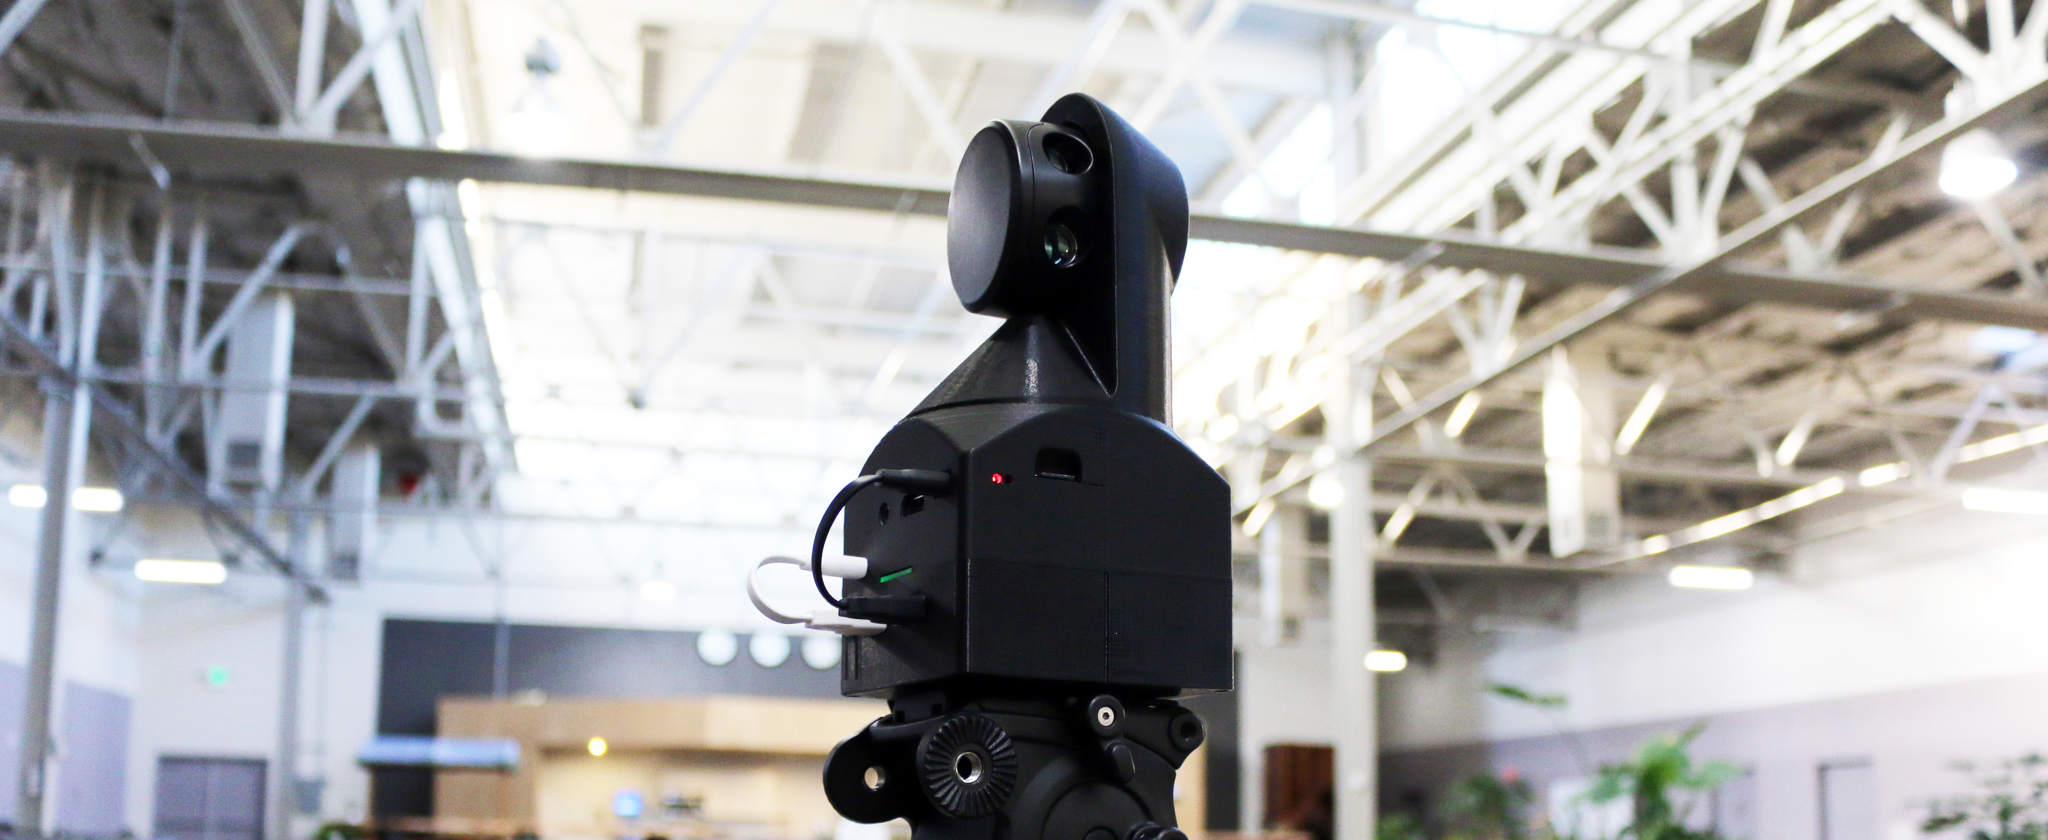 The Sweep DIY LiDAR 3D scanning add on. Photo via Scanse.